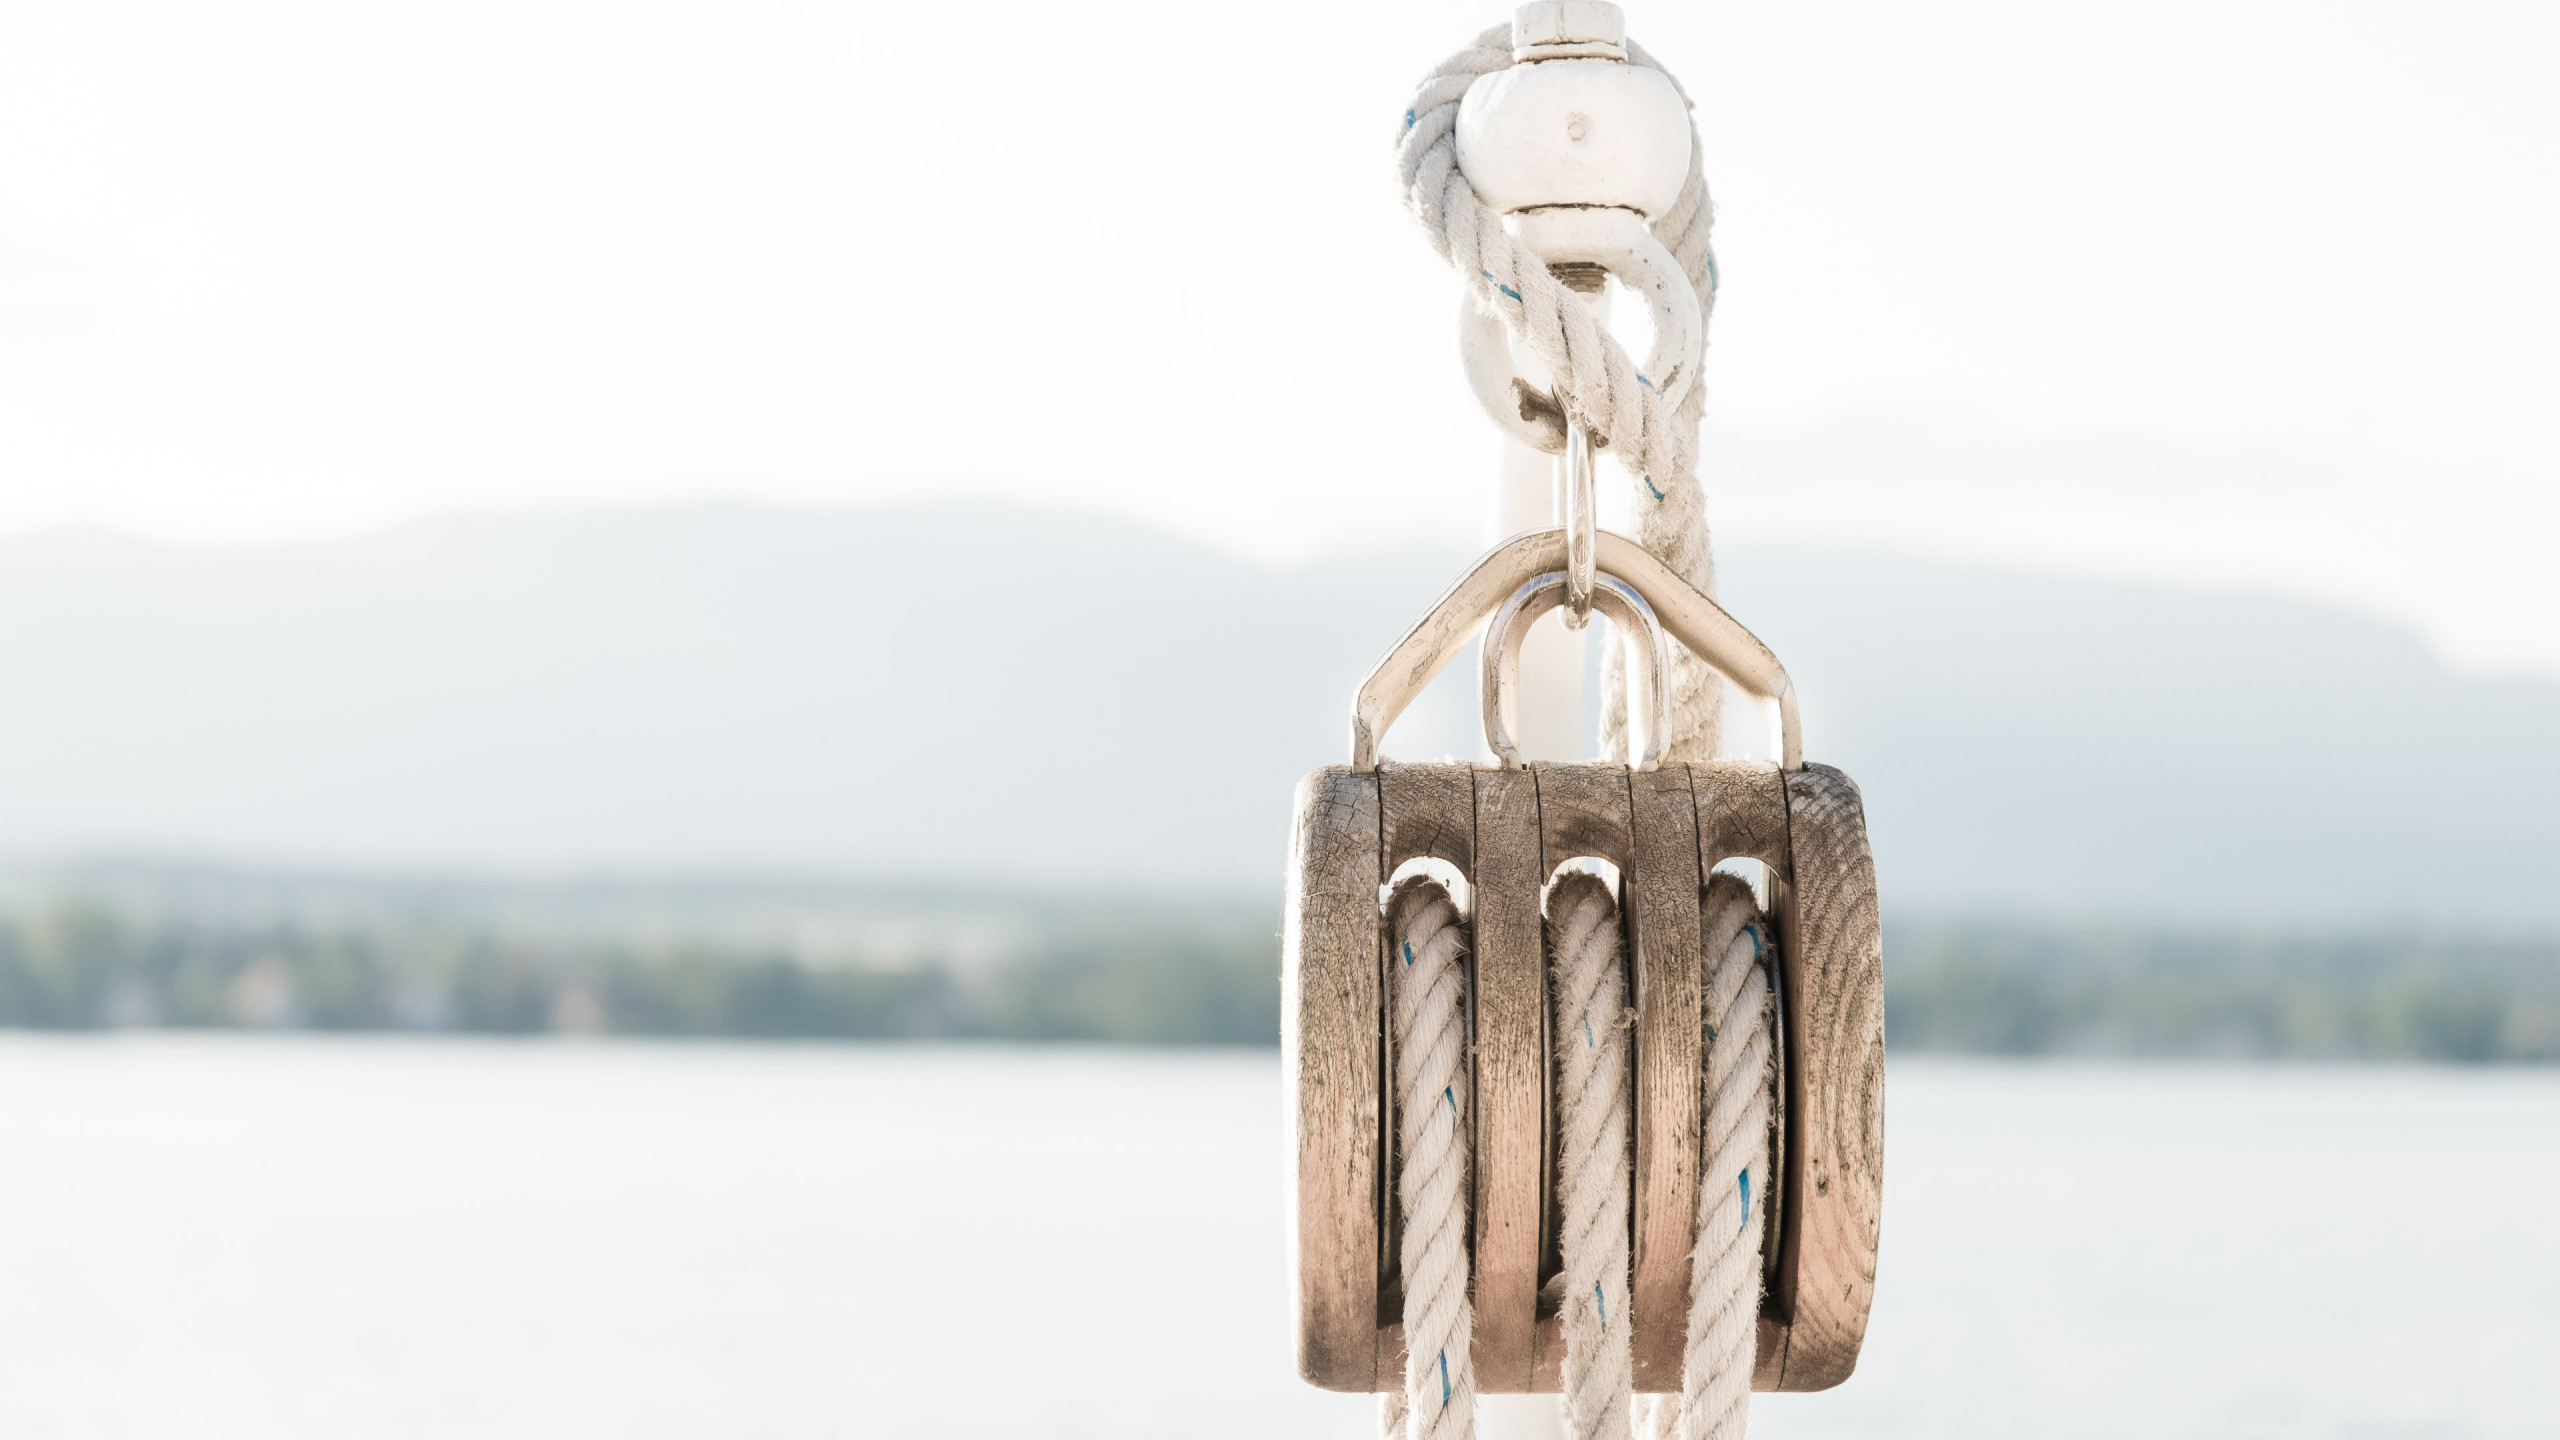 Pulley on a boat wallpaper 2560x1440